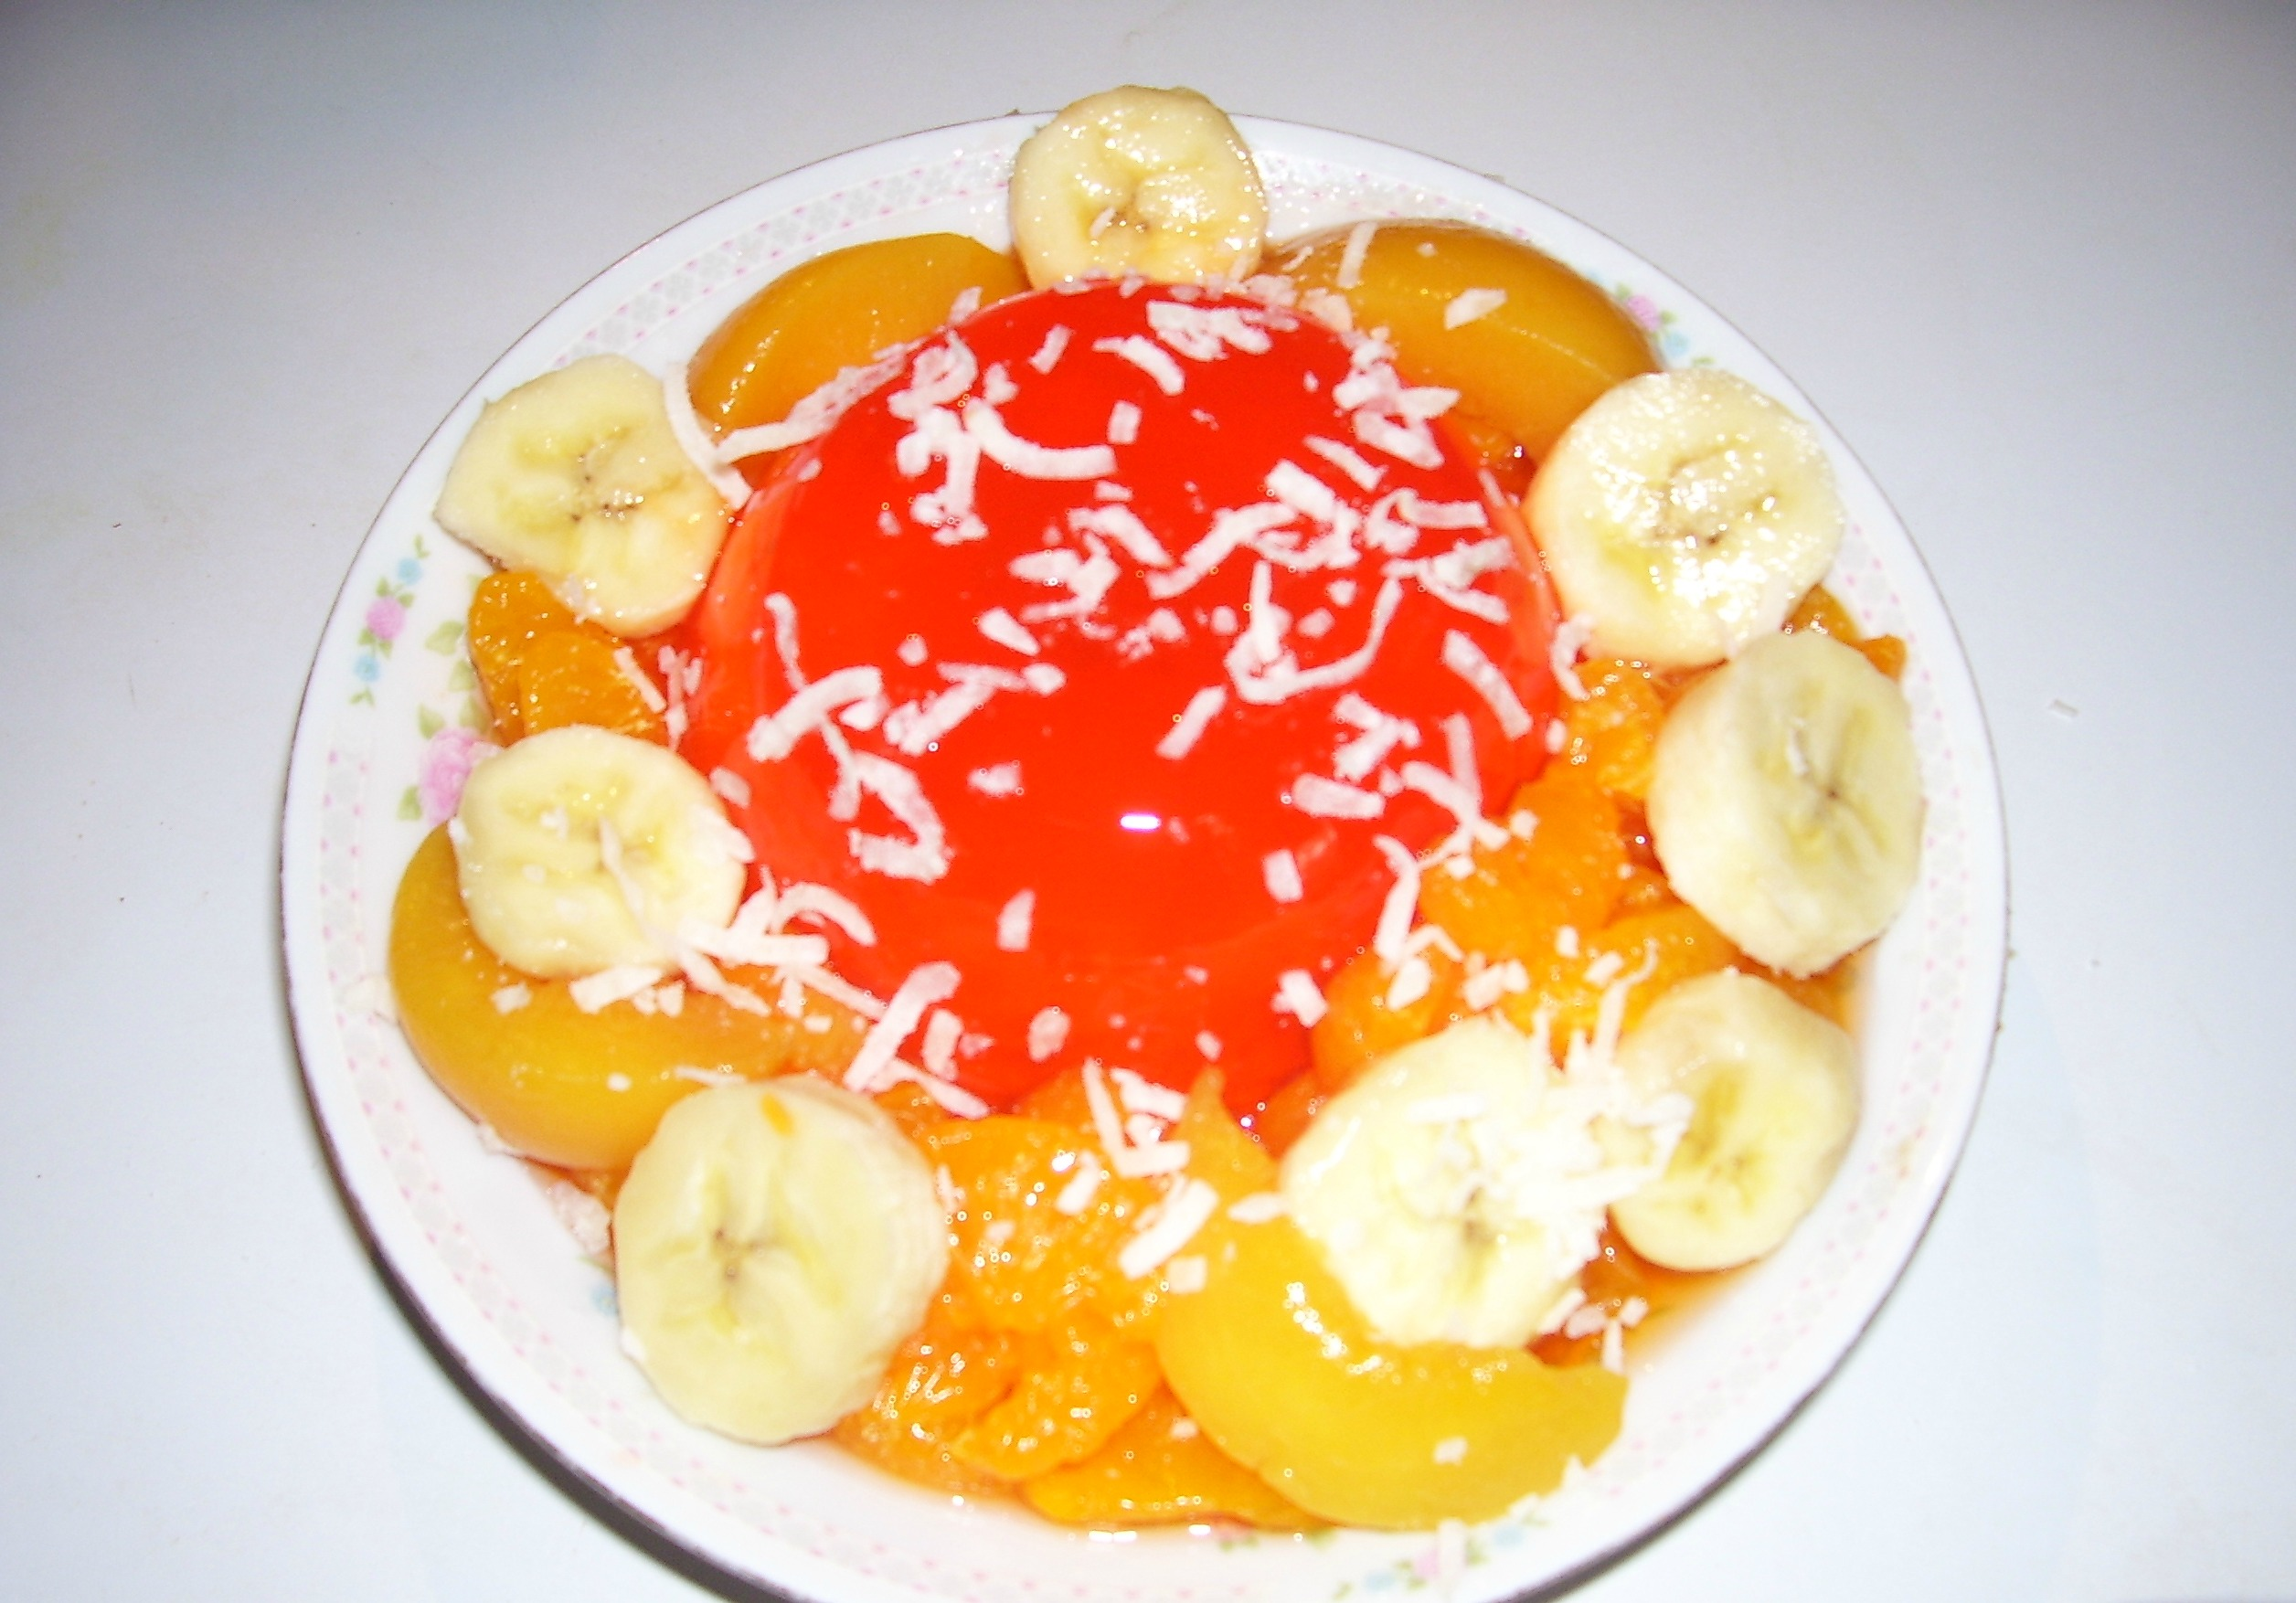 A beautiful and delicious, molded Orange Jello Salad with complimentary fruits atop.